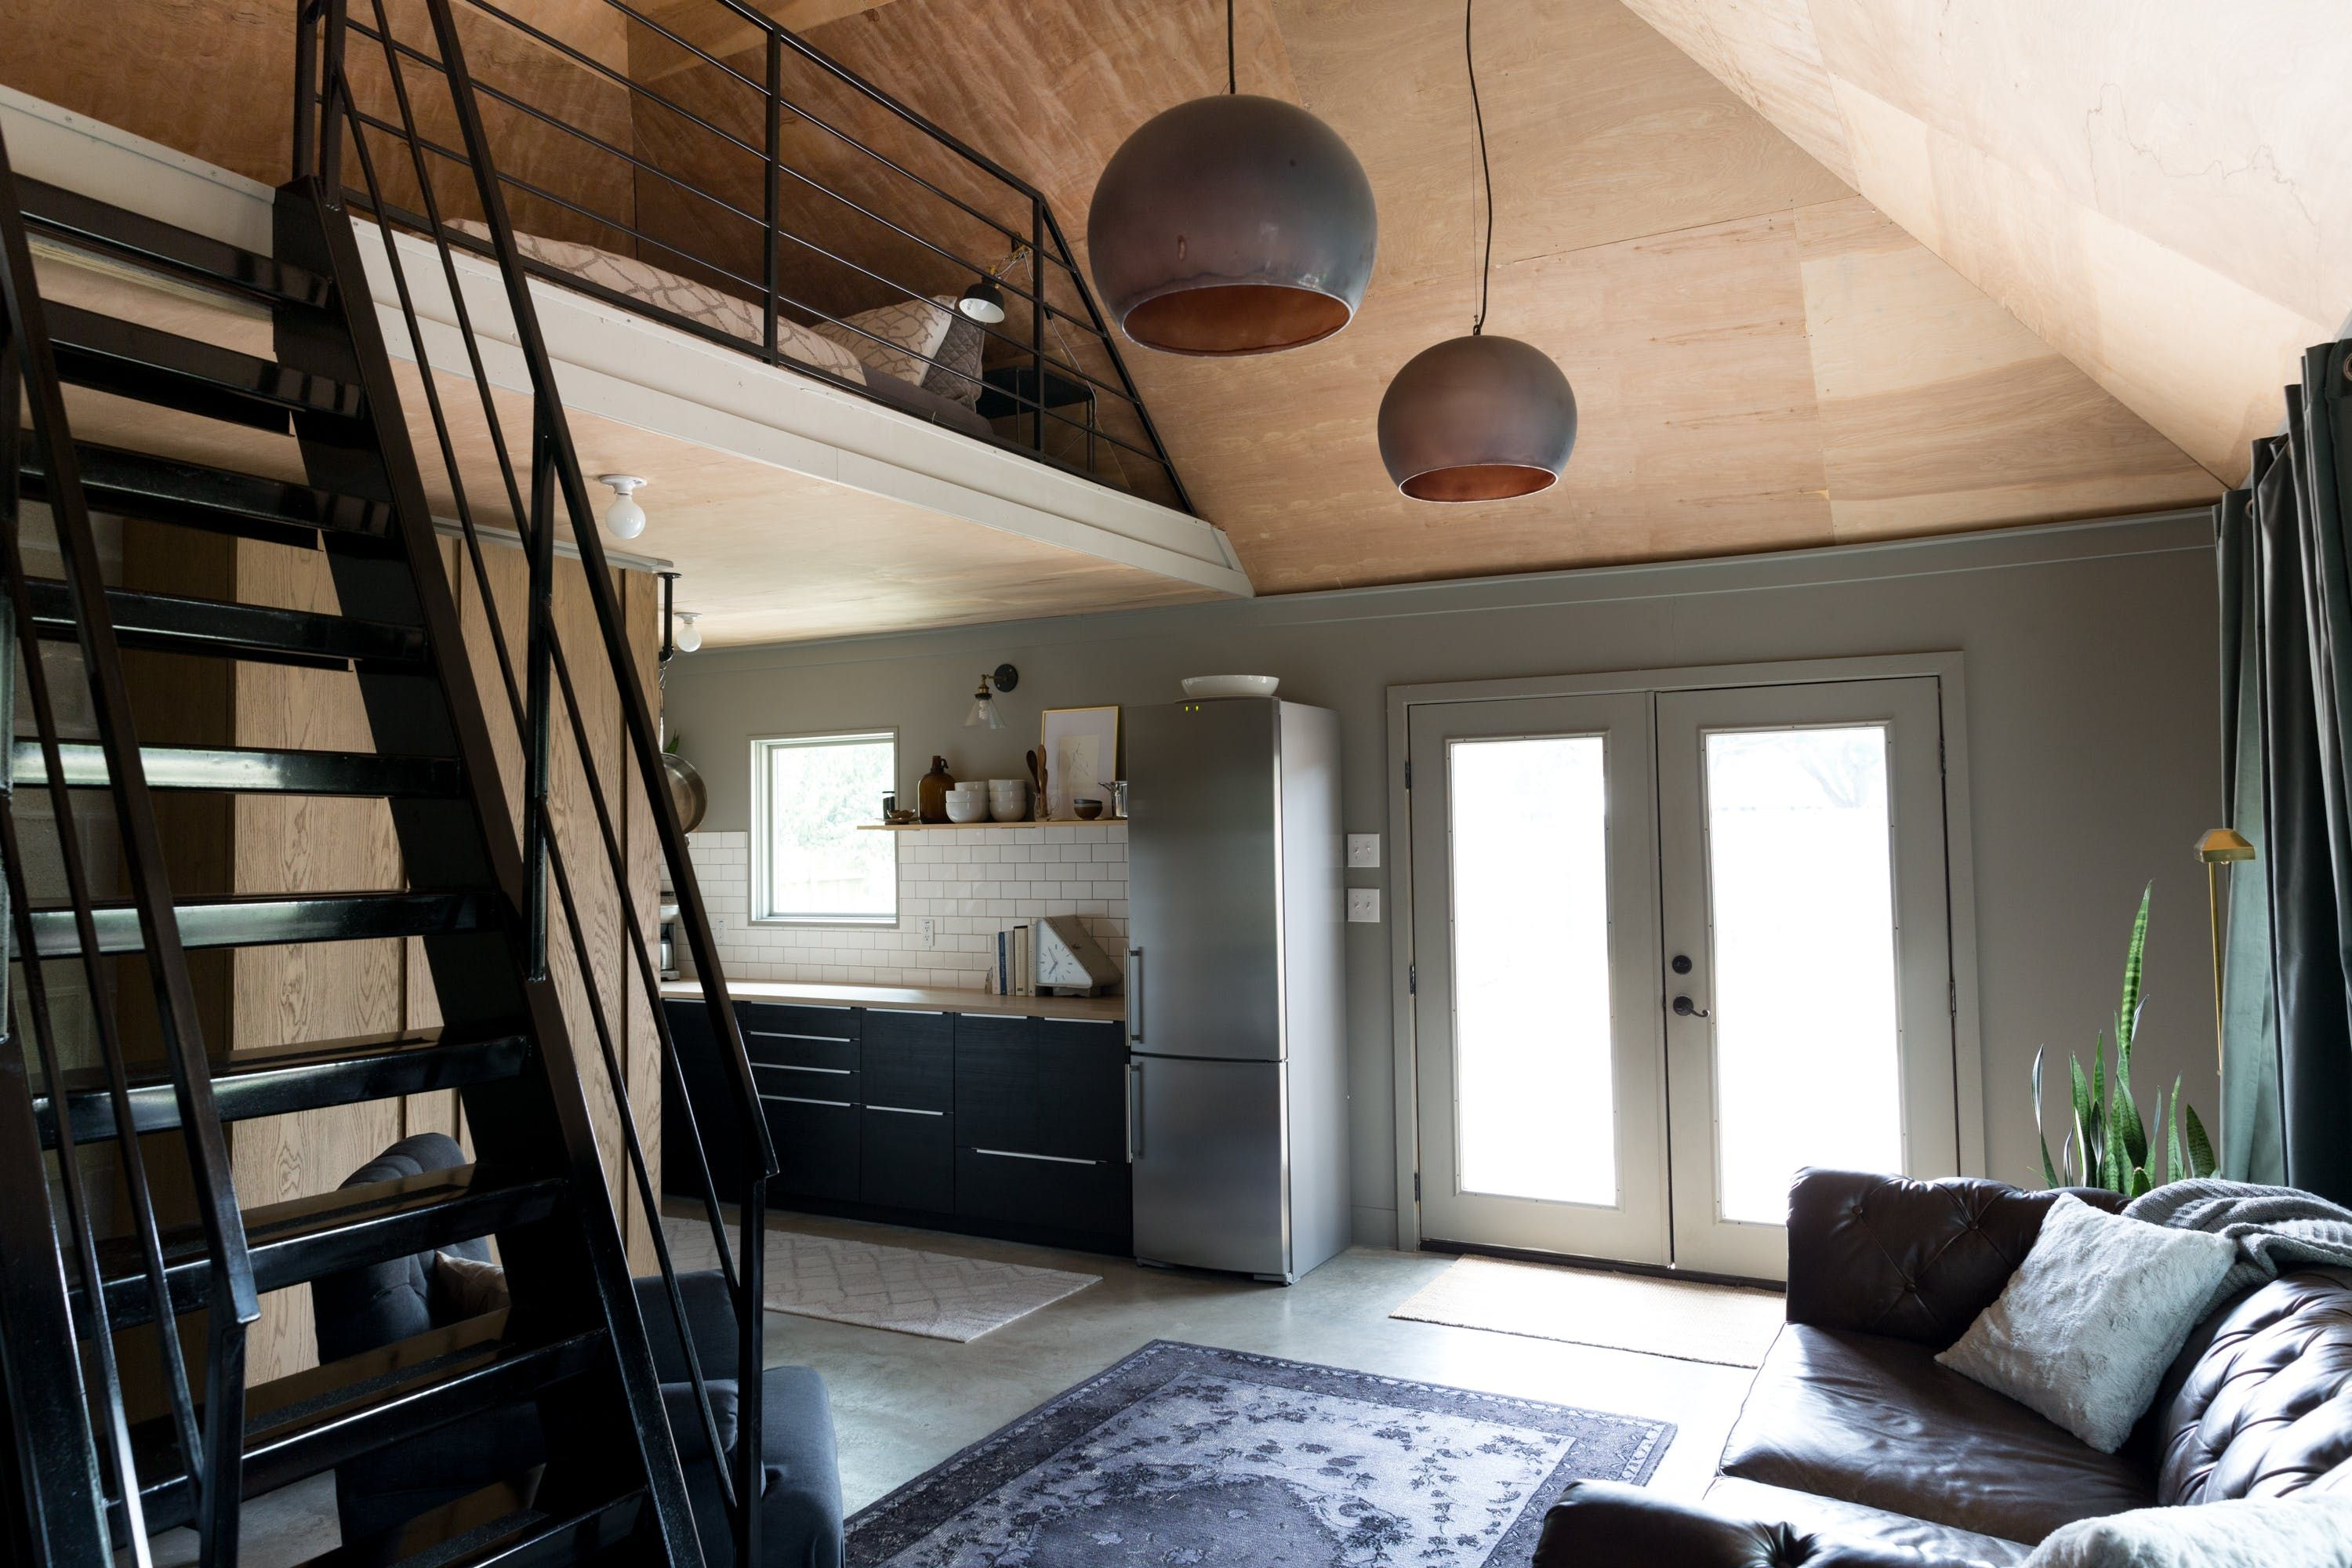 A Modest Modern Tiny Home In A Garage Garage To Living Space